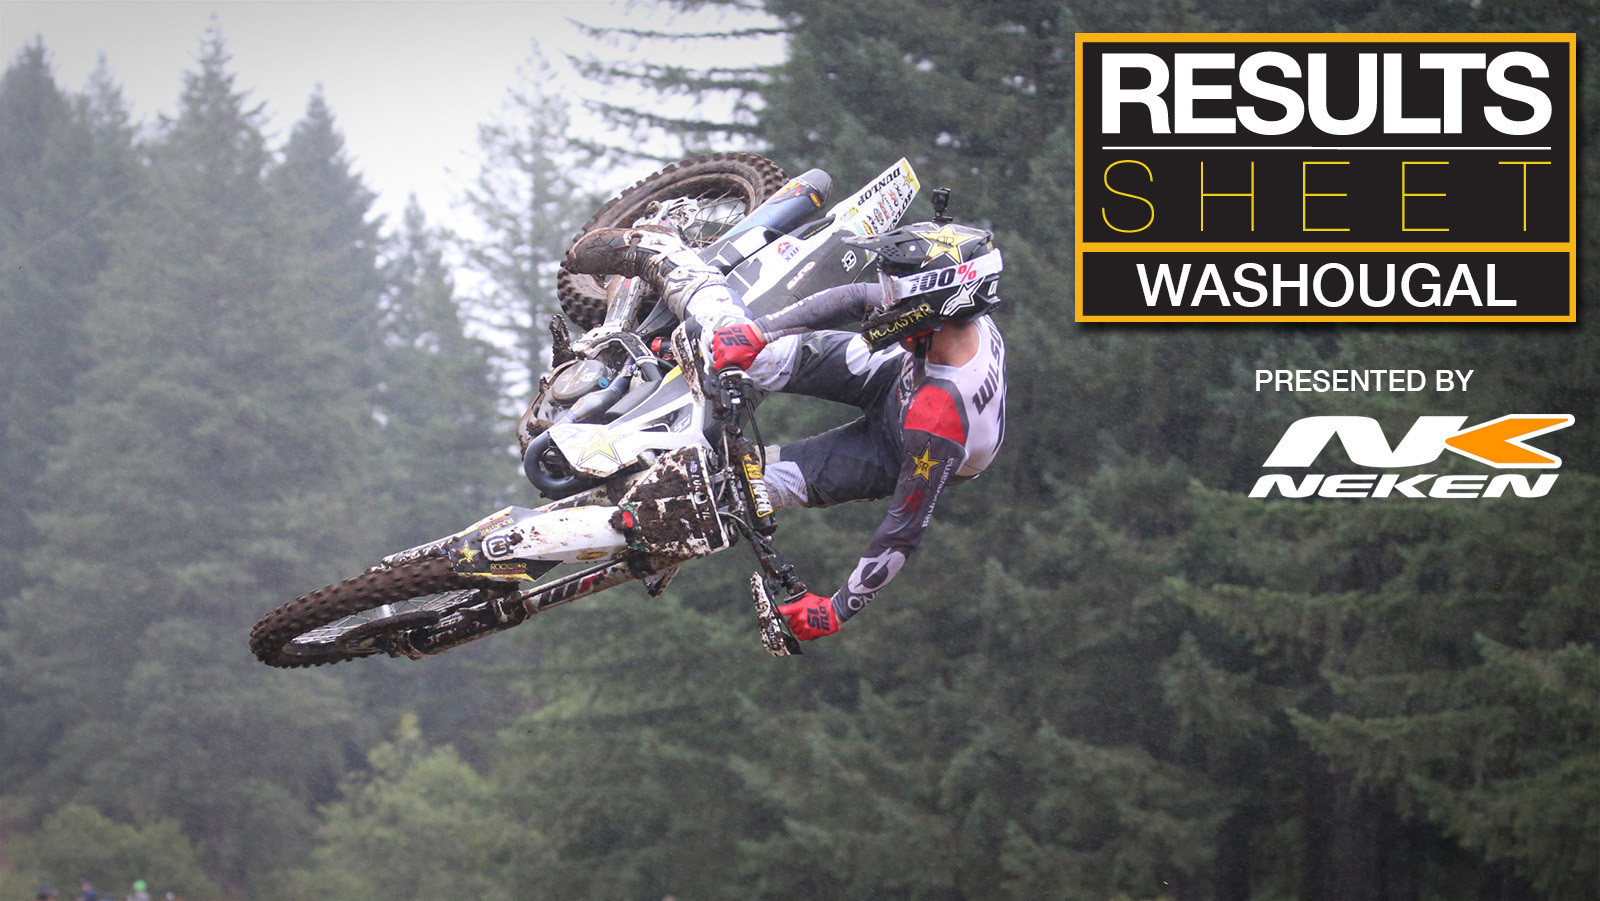 Results Sheet: 2019 Washougal Motocross National